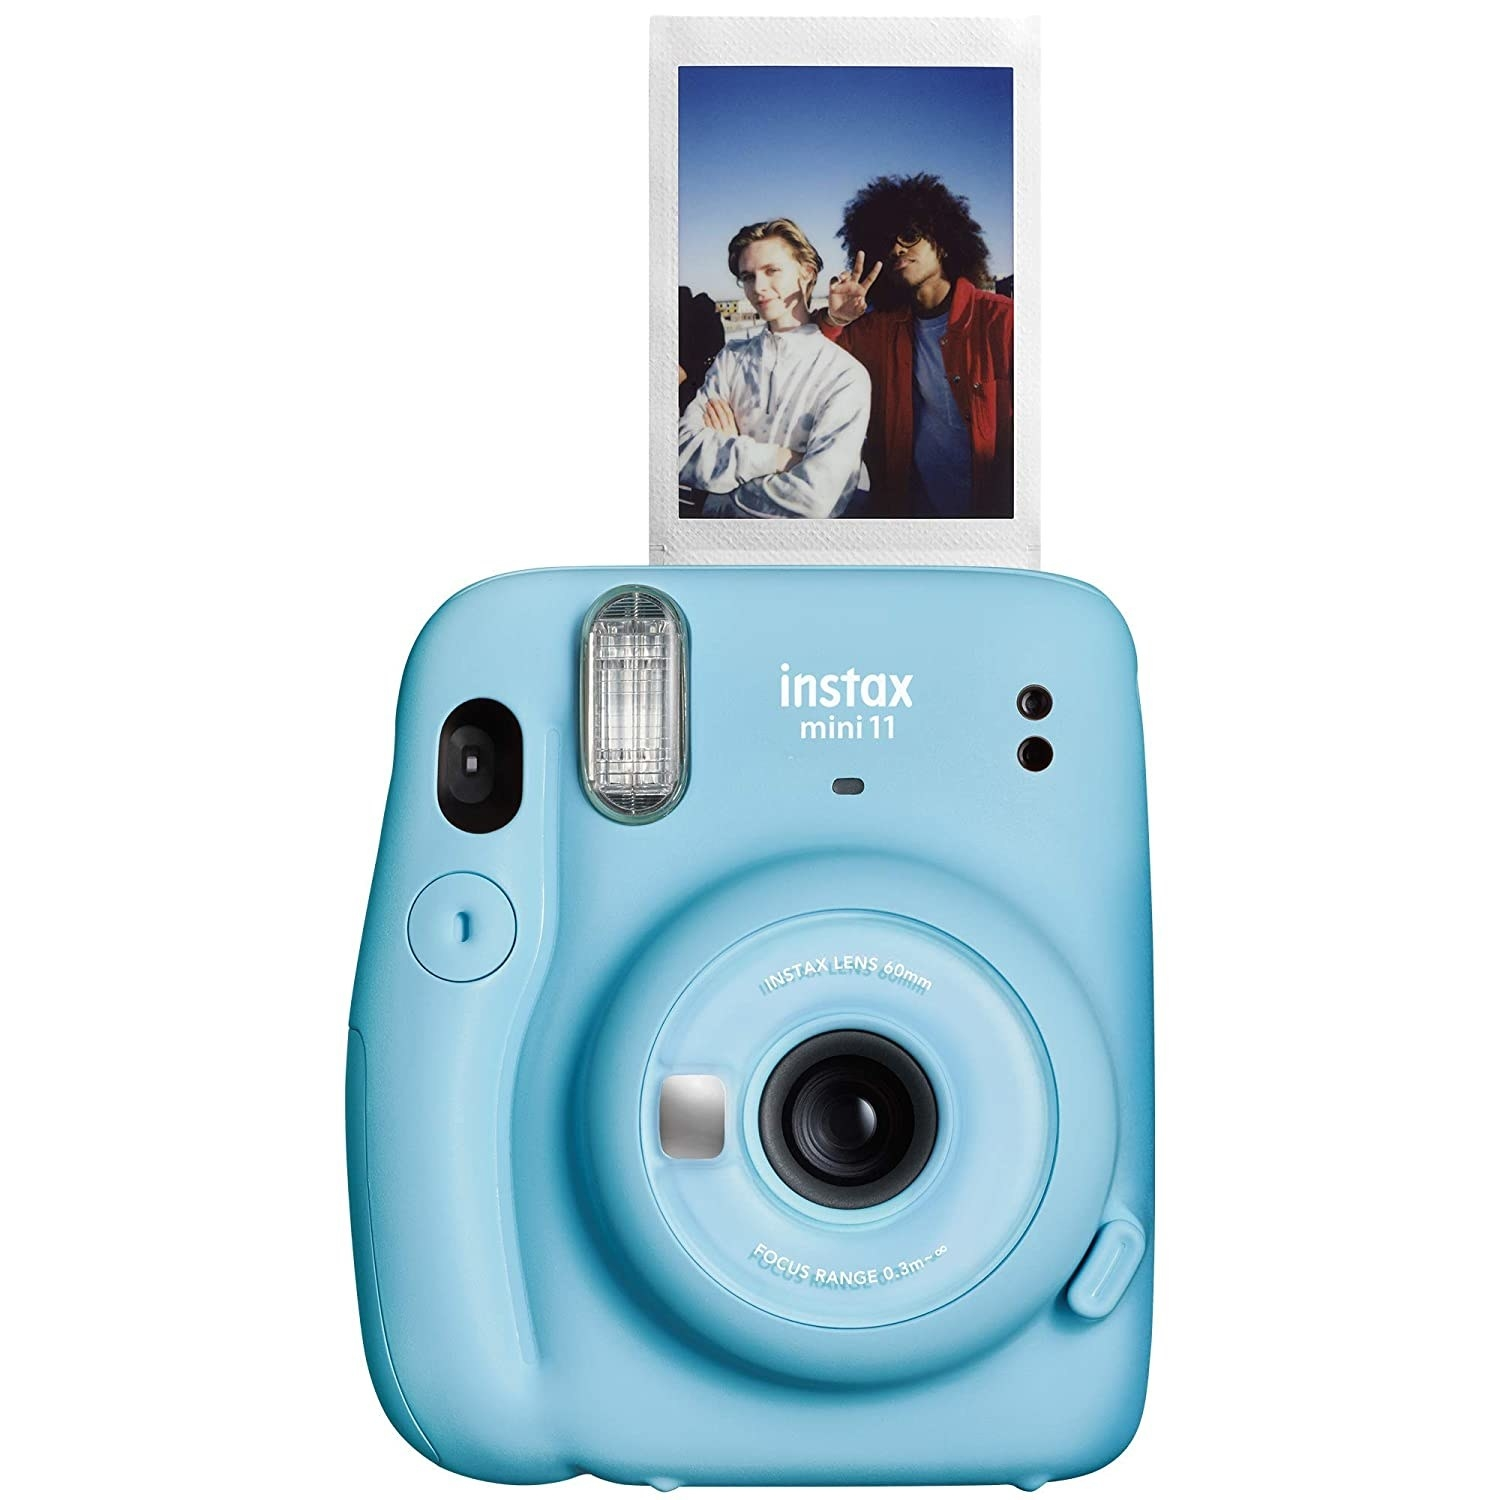 An ice blue polaroid camera with a polaroid photo coming out its top.